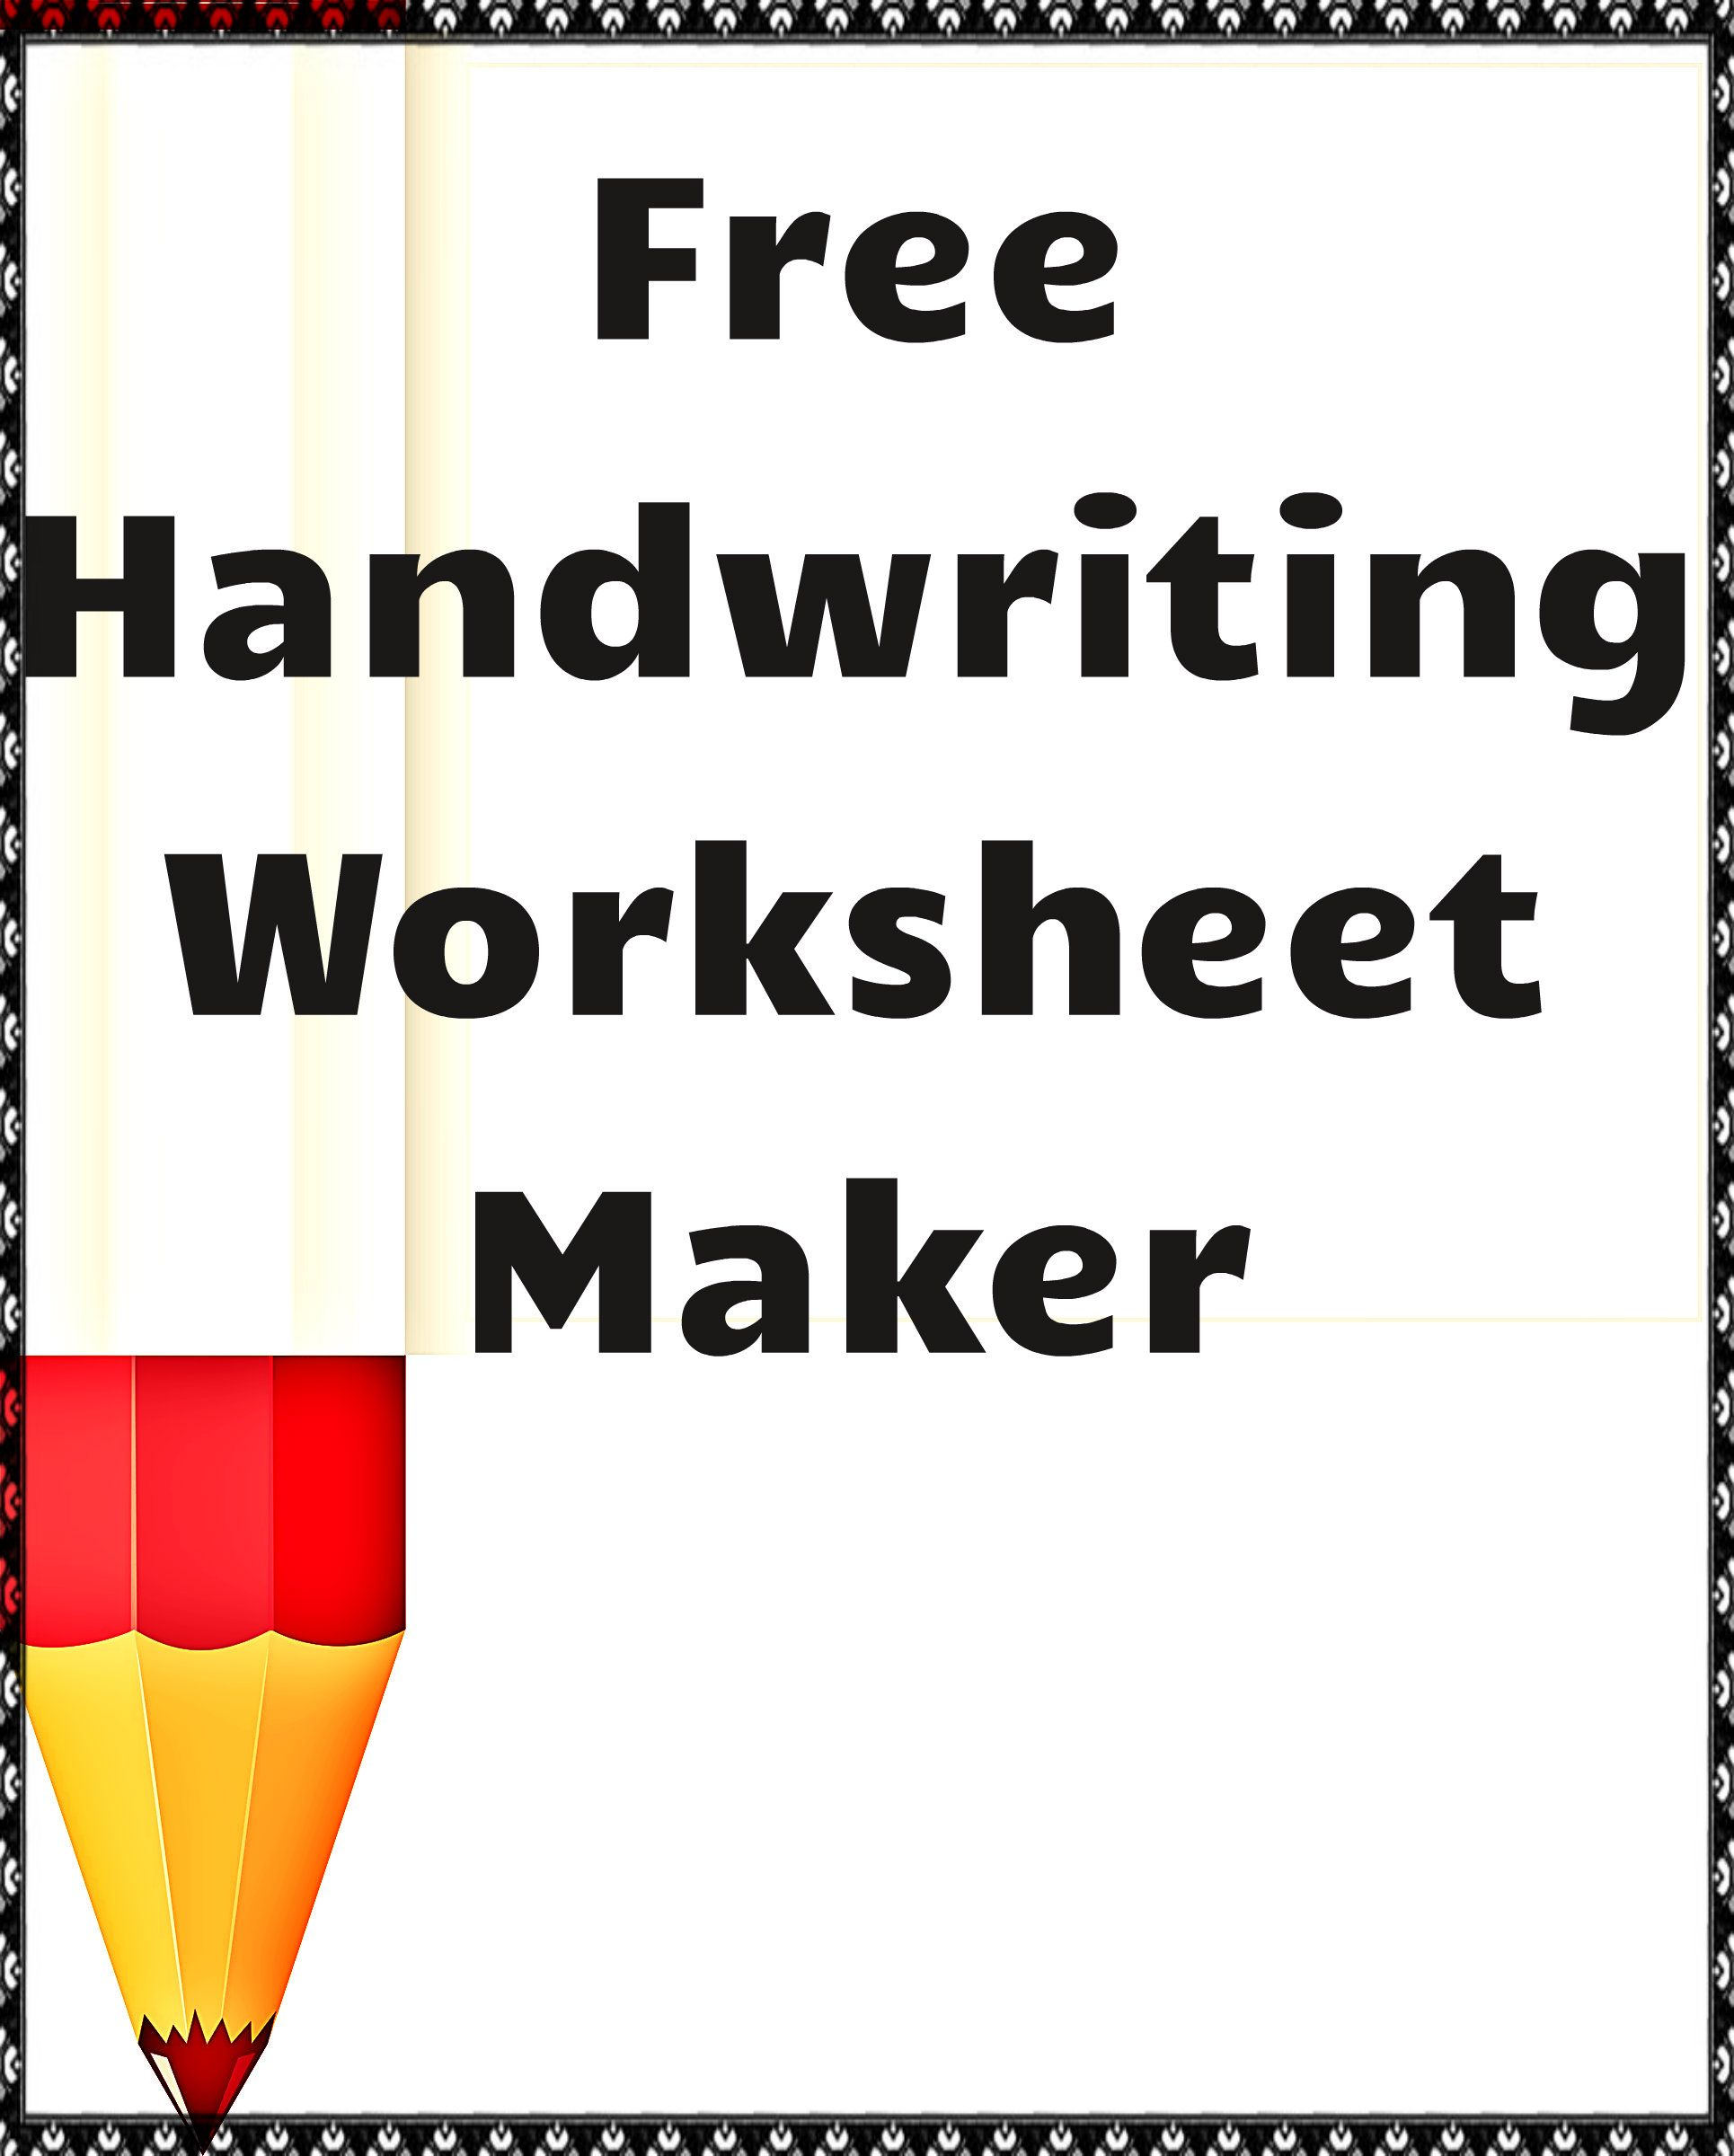 Handwriting Worksheet Maker